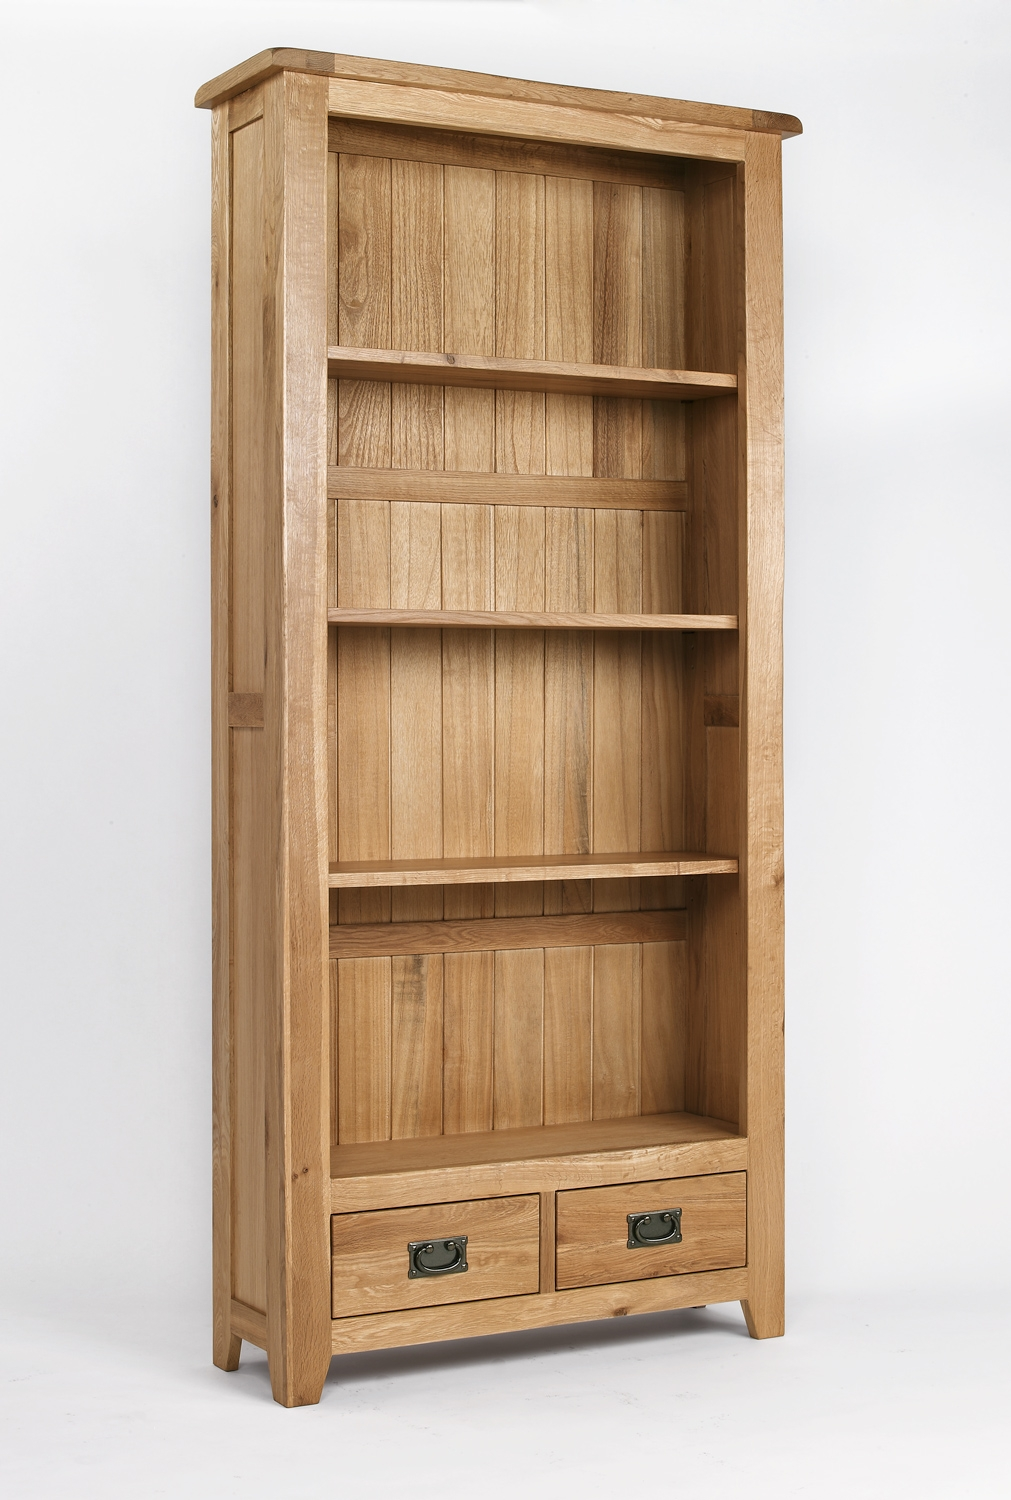 Image of: Images of Solid Wood Bookcase